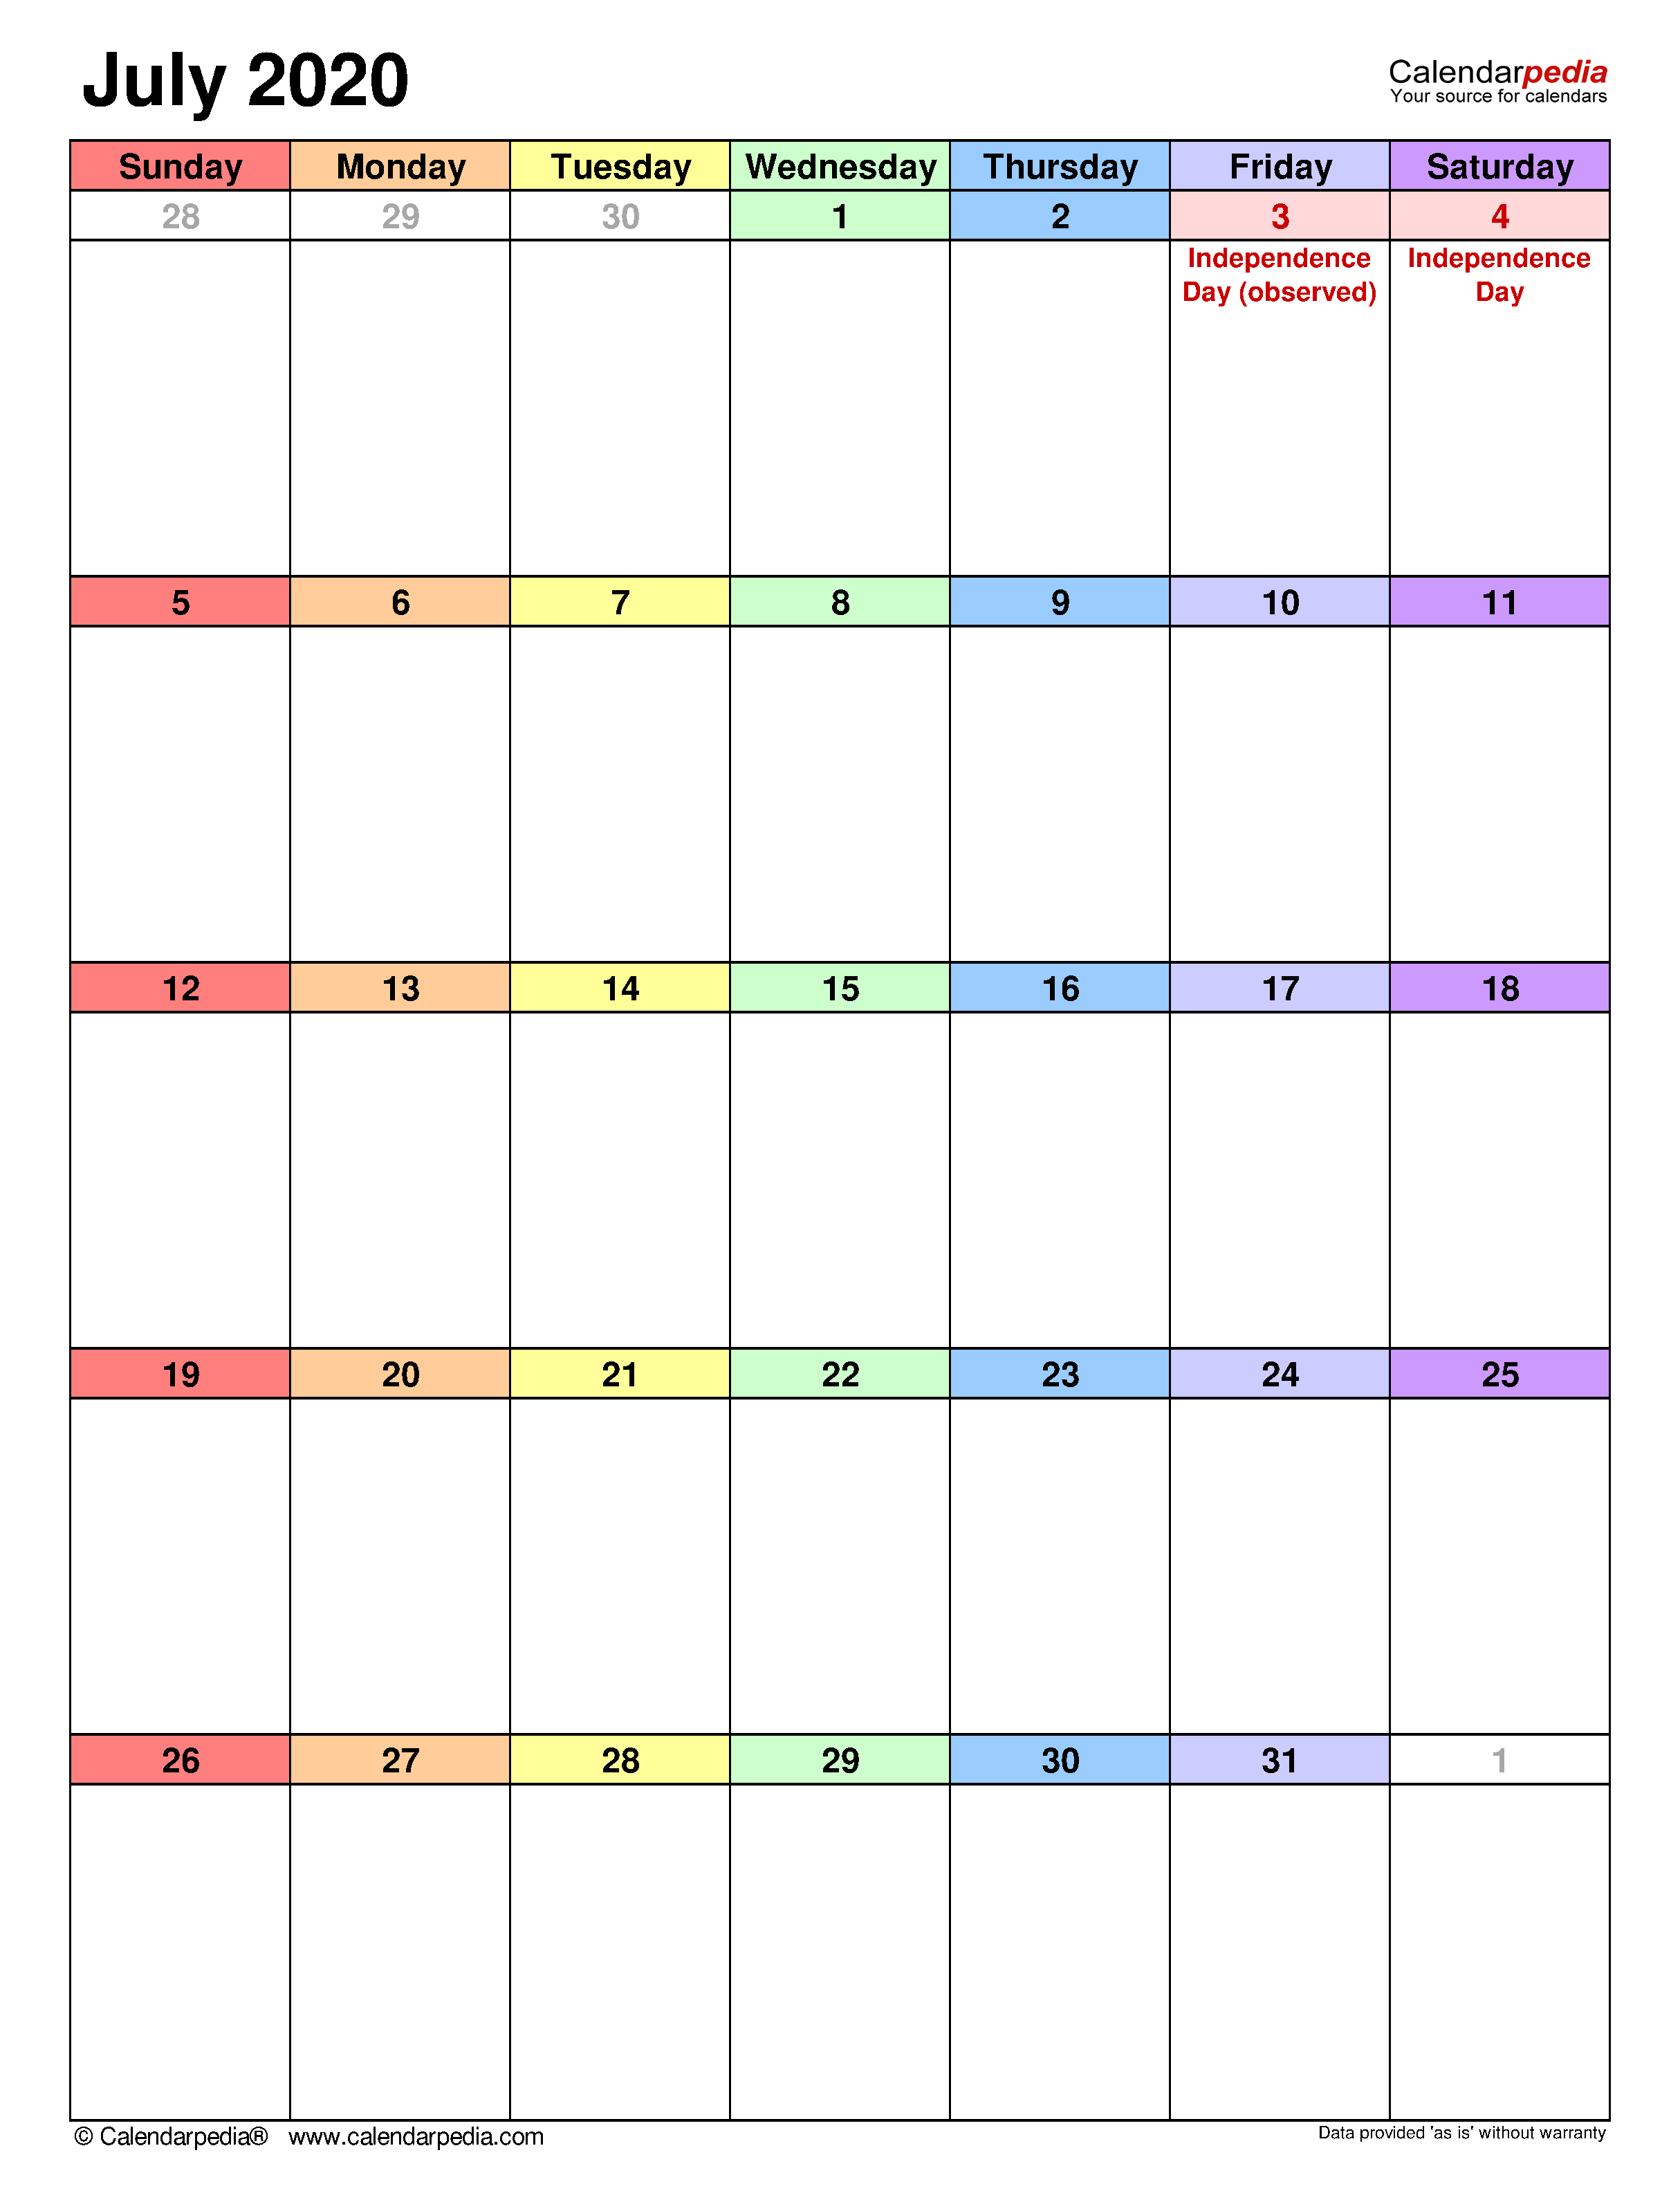 July 2020 - Calendar Templates For Word, Excel And Pdf inside Activity Calendar 2020 To Fill In